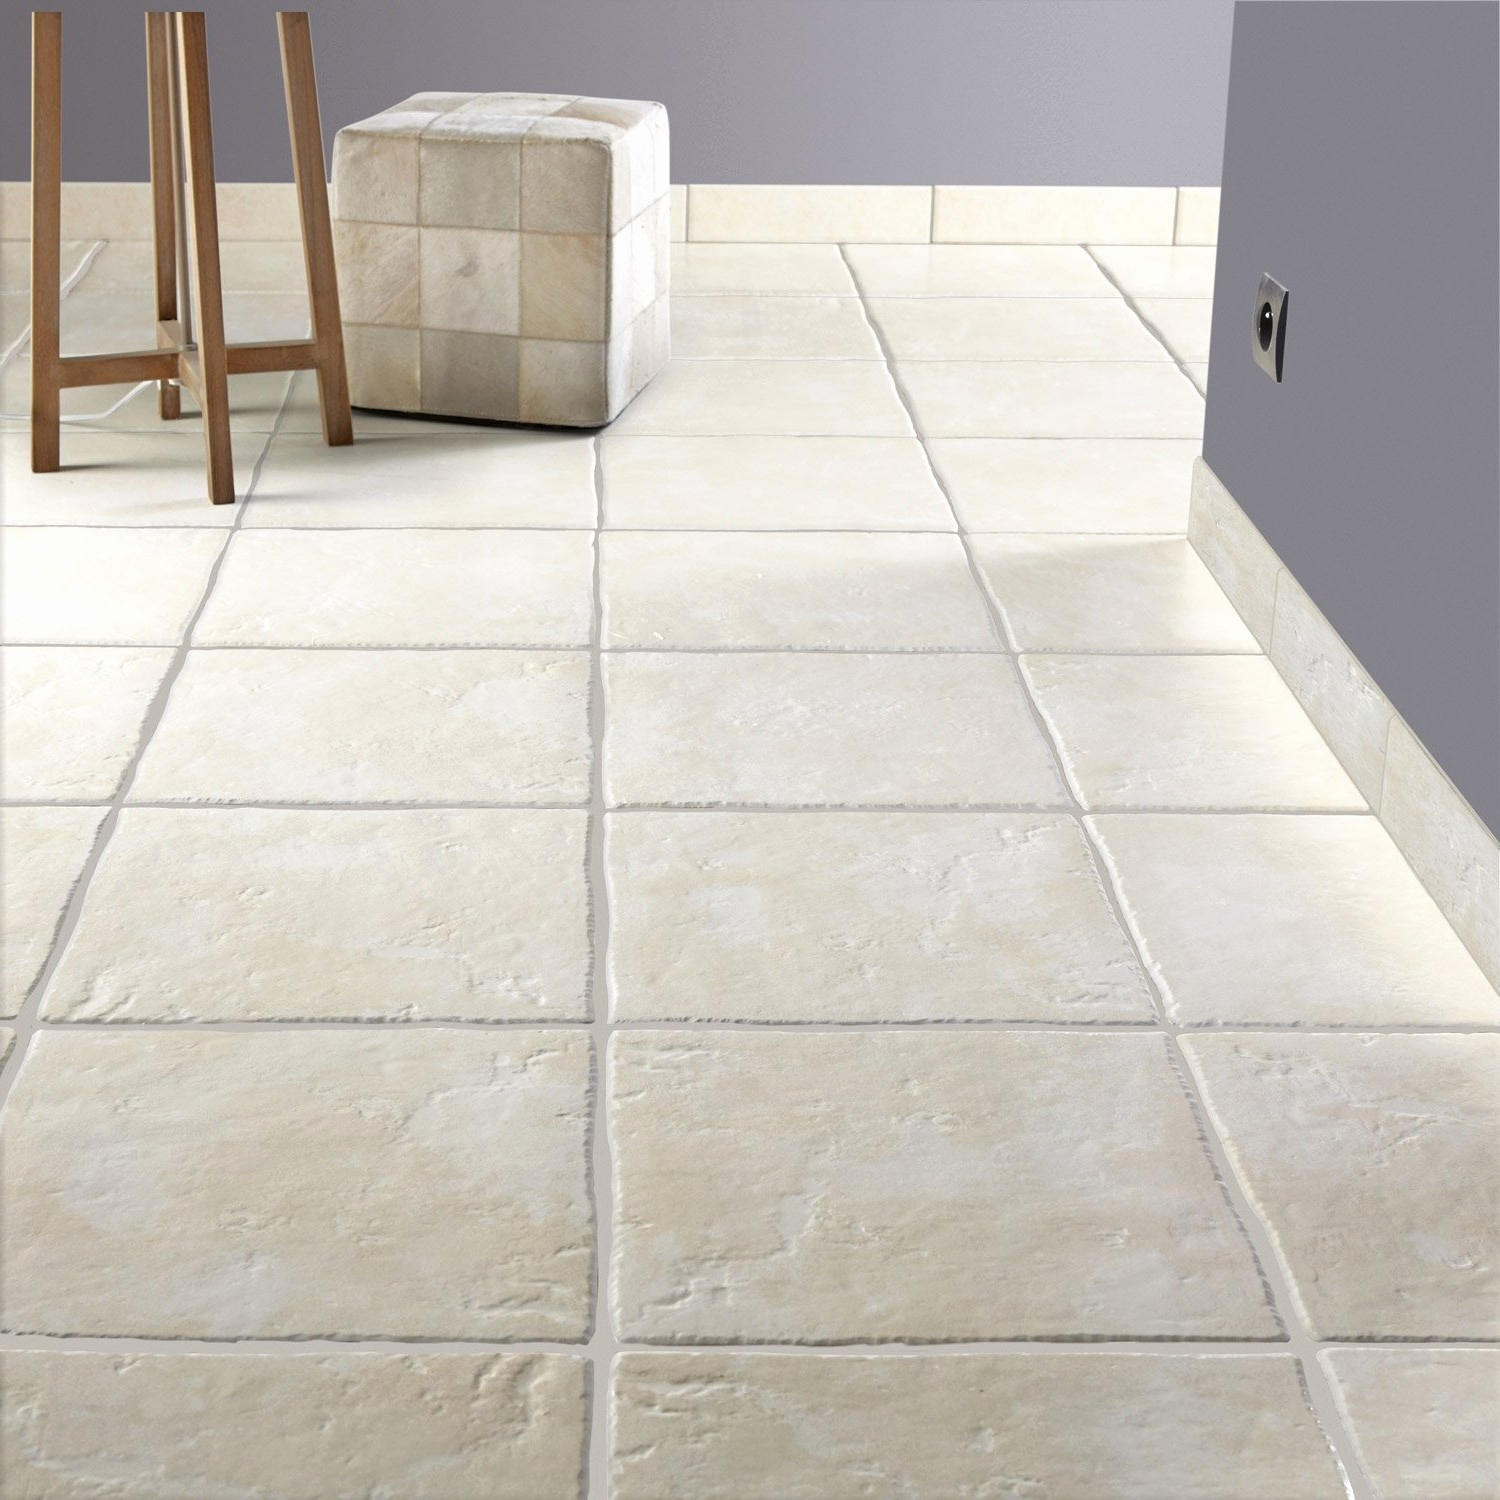 Carrelage Point P Salle De Bain Inspirant Galerie Carrelage Point P Beau Carrelage Exterieur Point P Simple Carrelage